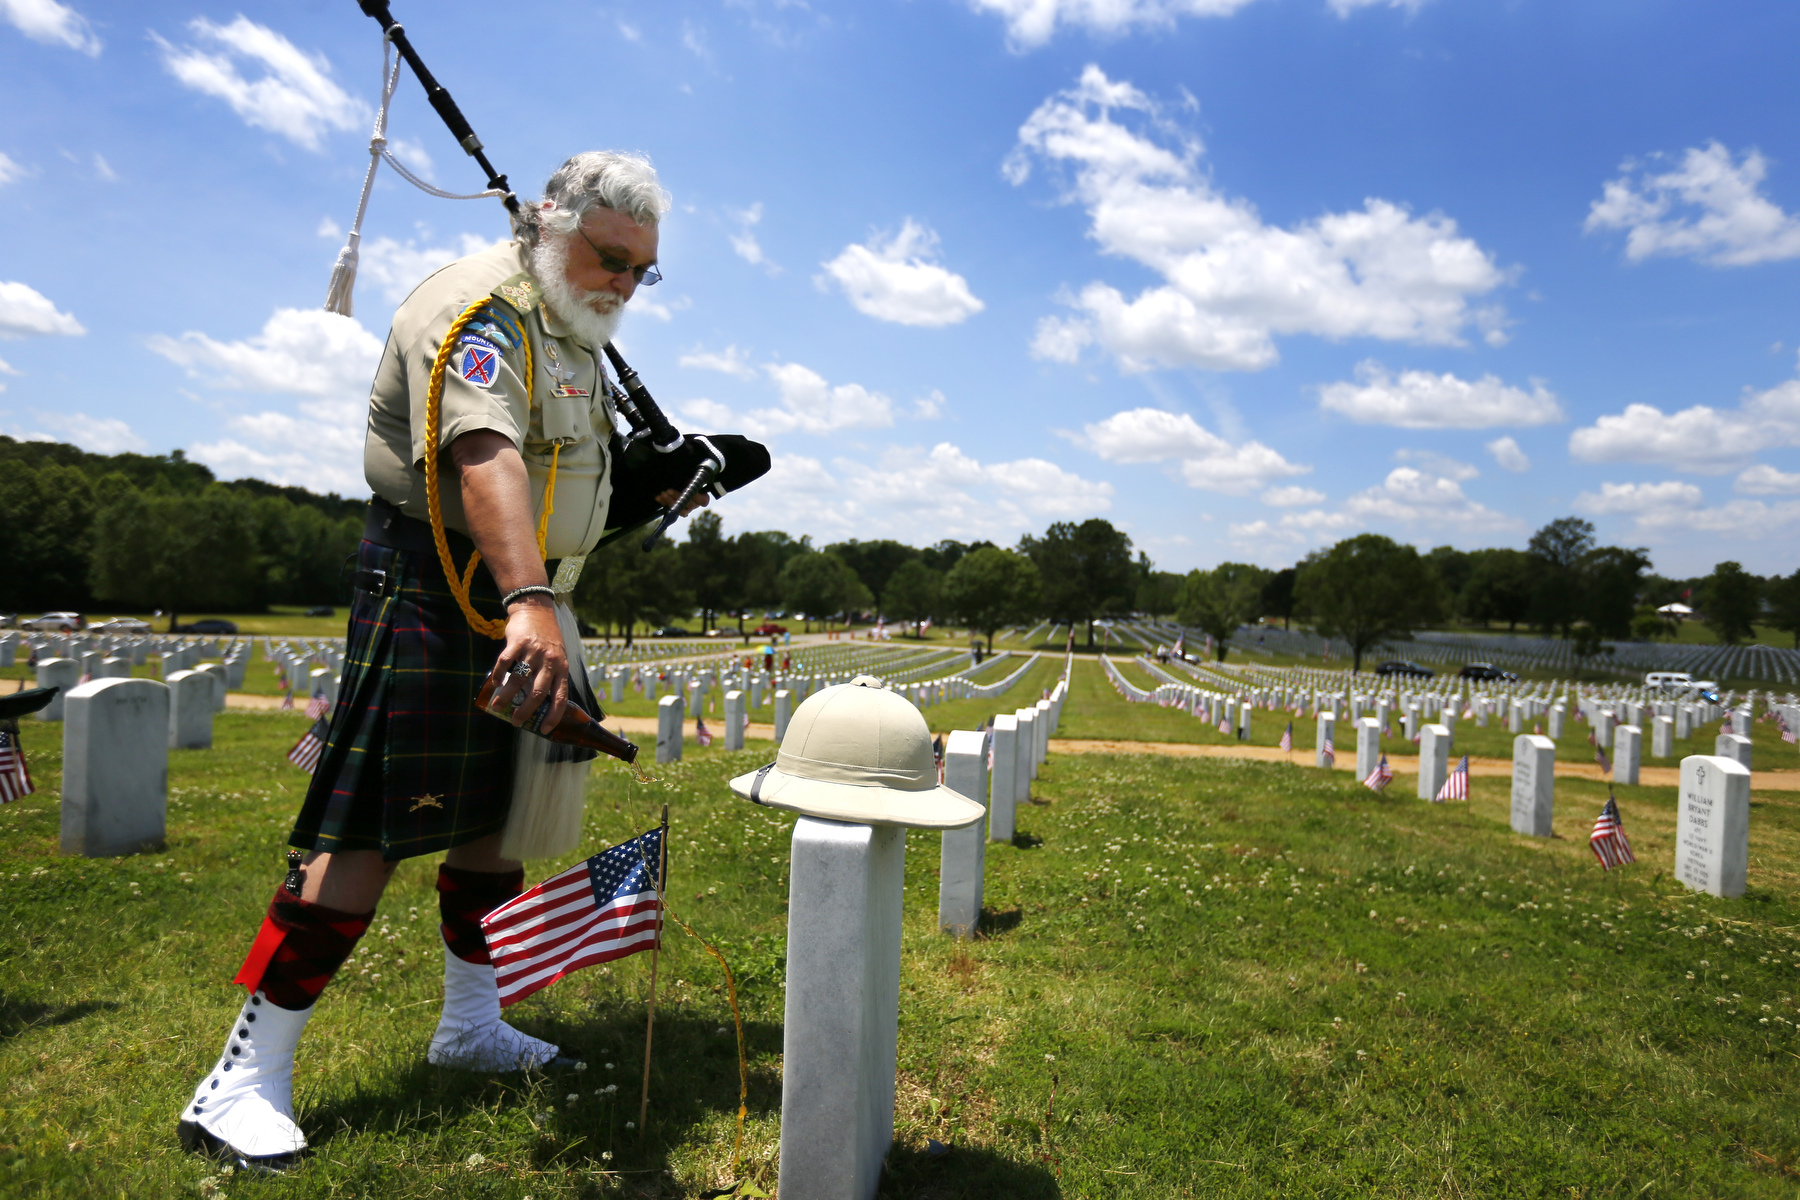 May 30, 2016 - Retired Army Col. Darwin Concon pours out a beer on the grave of his best friend he enlisted into the Army with in August 1978. Concon, who went on to serve a combat tour in Iraq during his 33 year career in the Army, played his bagpipes for his friend, Norman Shannon.  (Mike Brown/The Commercial Appeal)